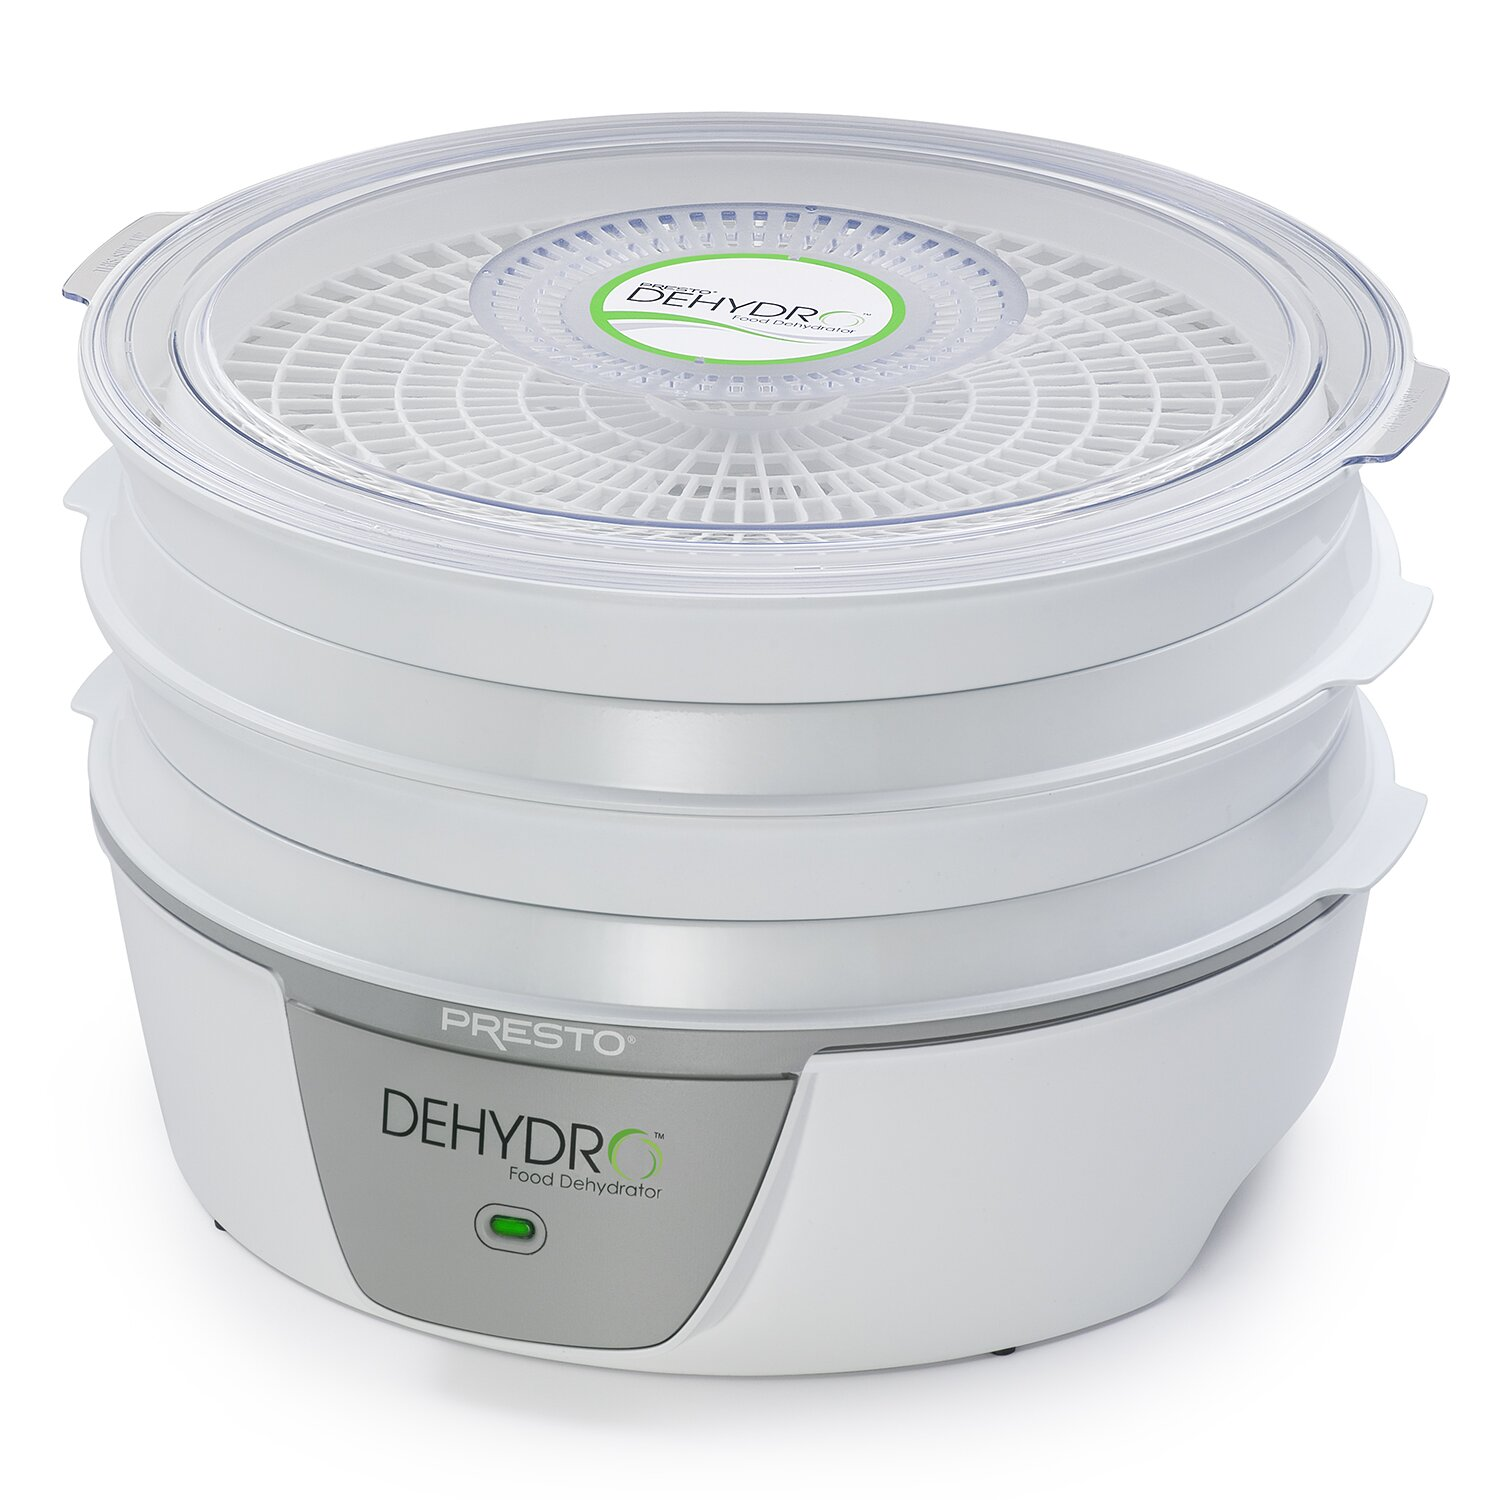 presto dehydro 4 tray electric food dehydrator reviews. Black Bedroom Furniture Sets. Home Design Ideas